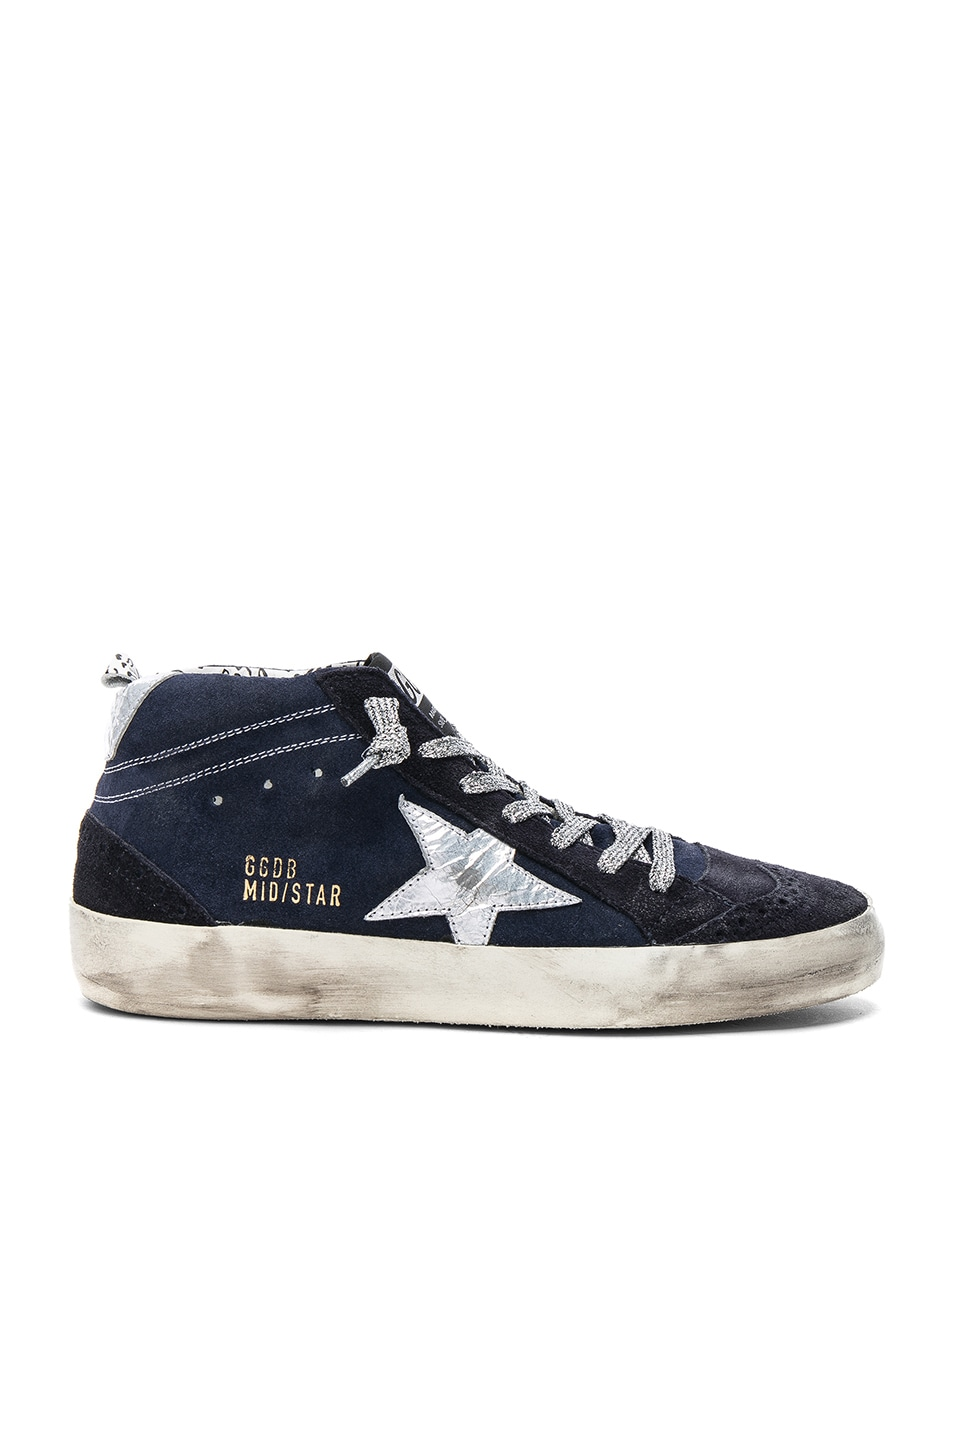 Golden Goose Mid Star suede sneakers kANXDhtTJ